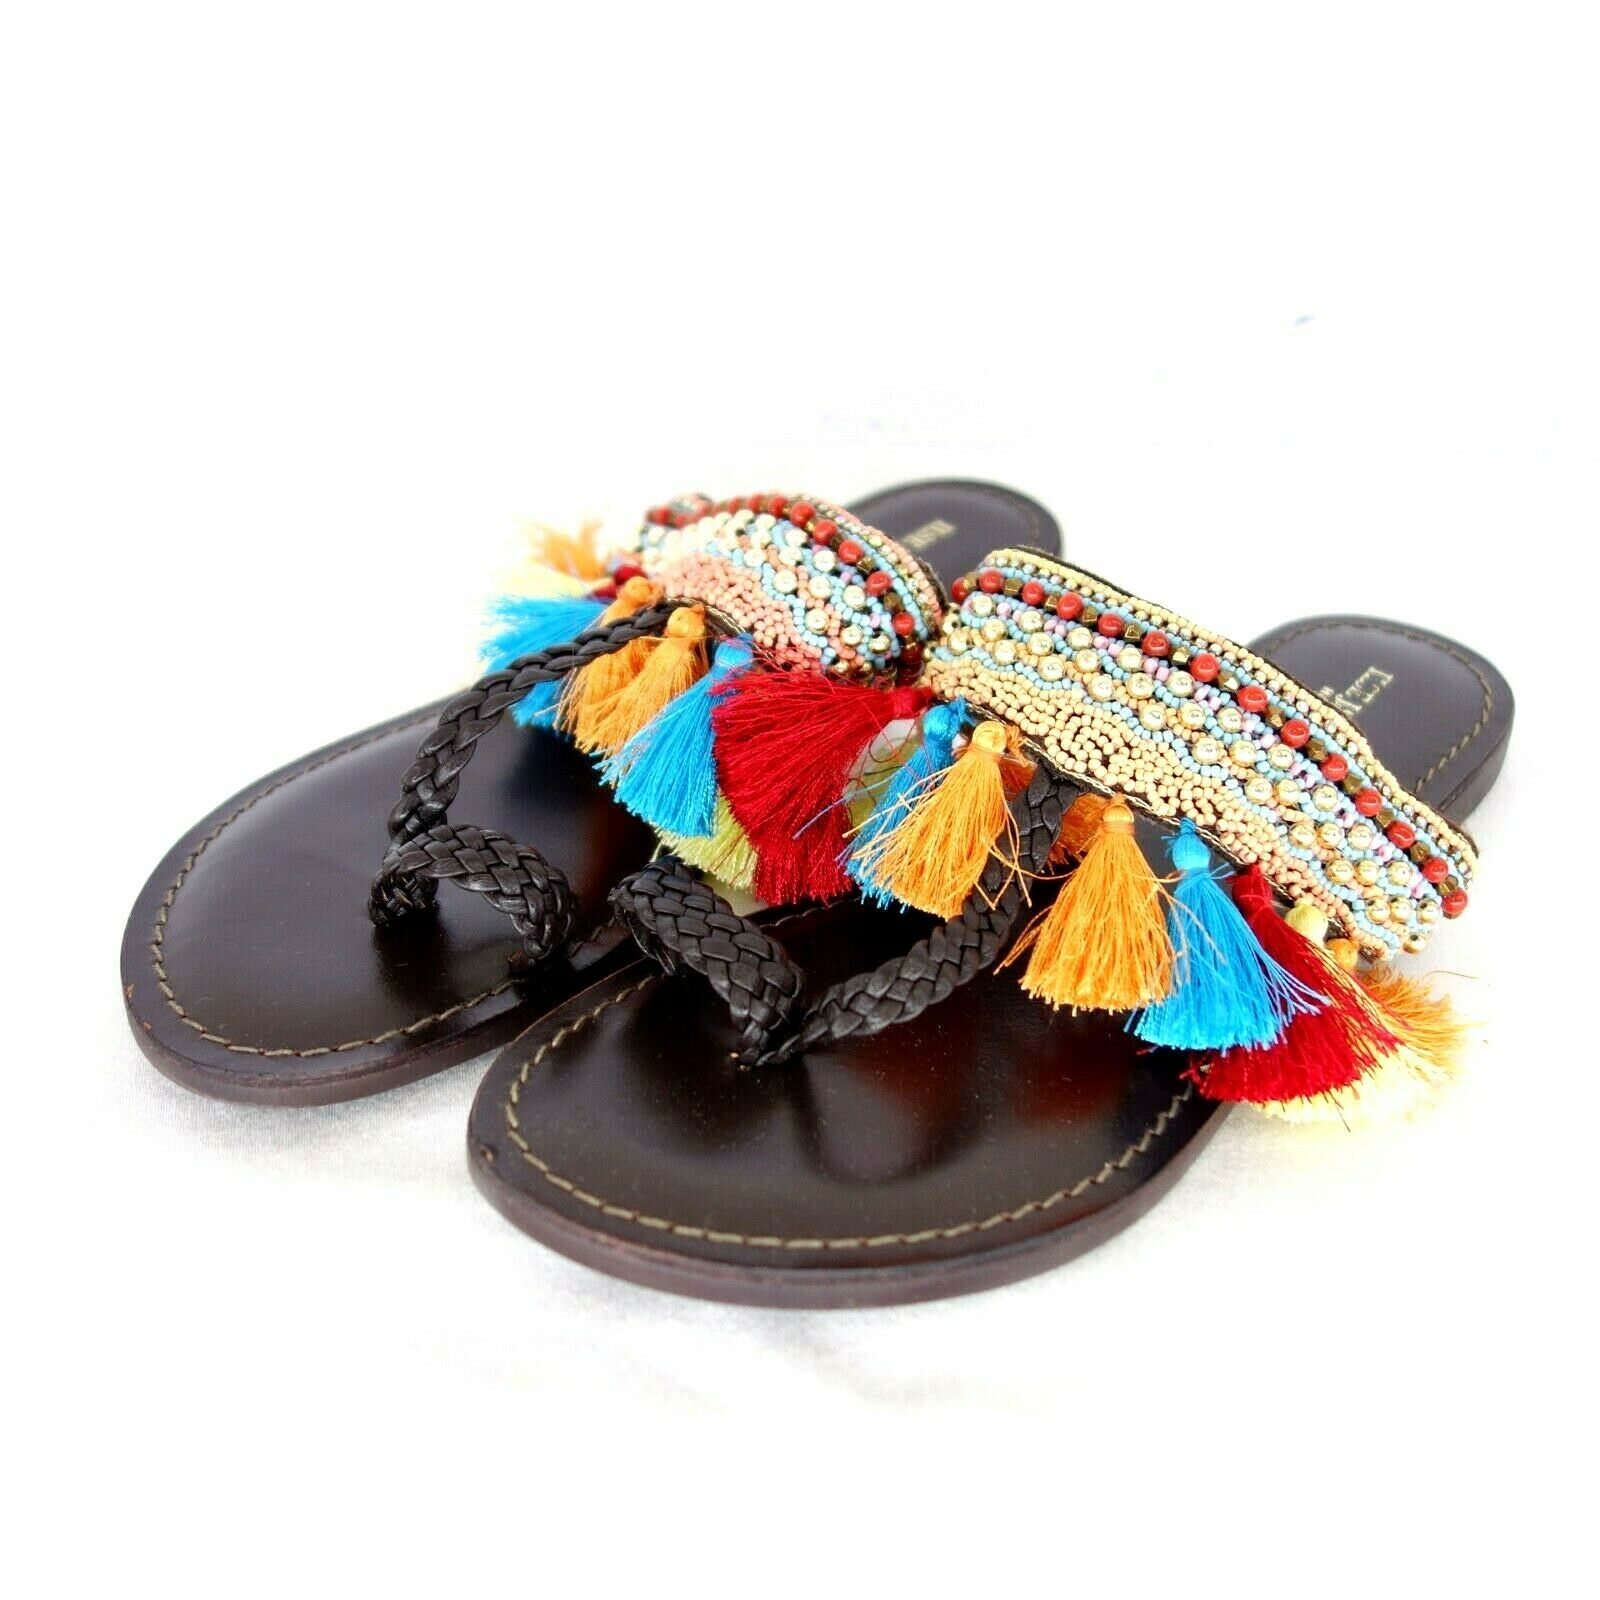 Ilse Jacobsen Women's shoes frixa Sandals Sizes. 36 38 Leather Flat Pom-Pom NP 99